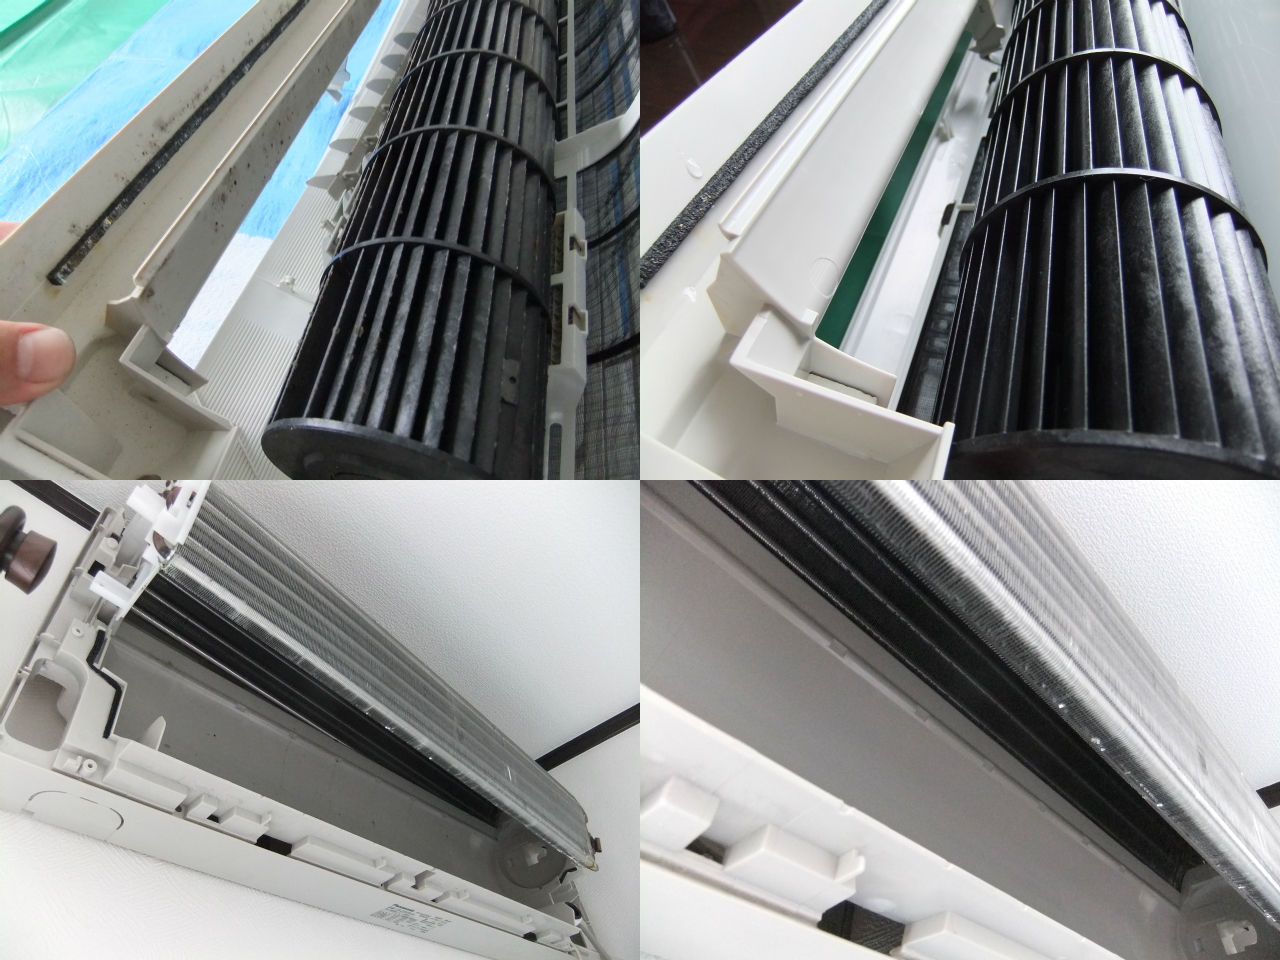 http://ajras.net/images/120629-aircon1.jpg